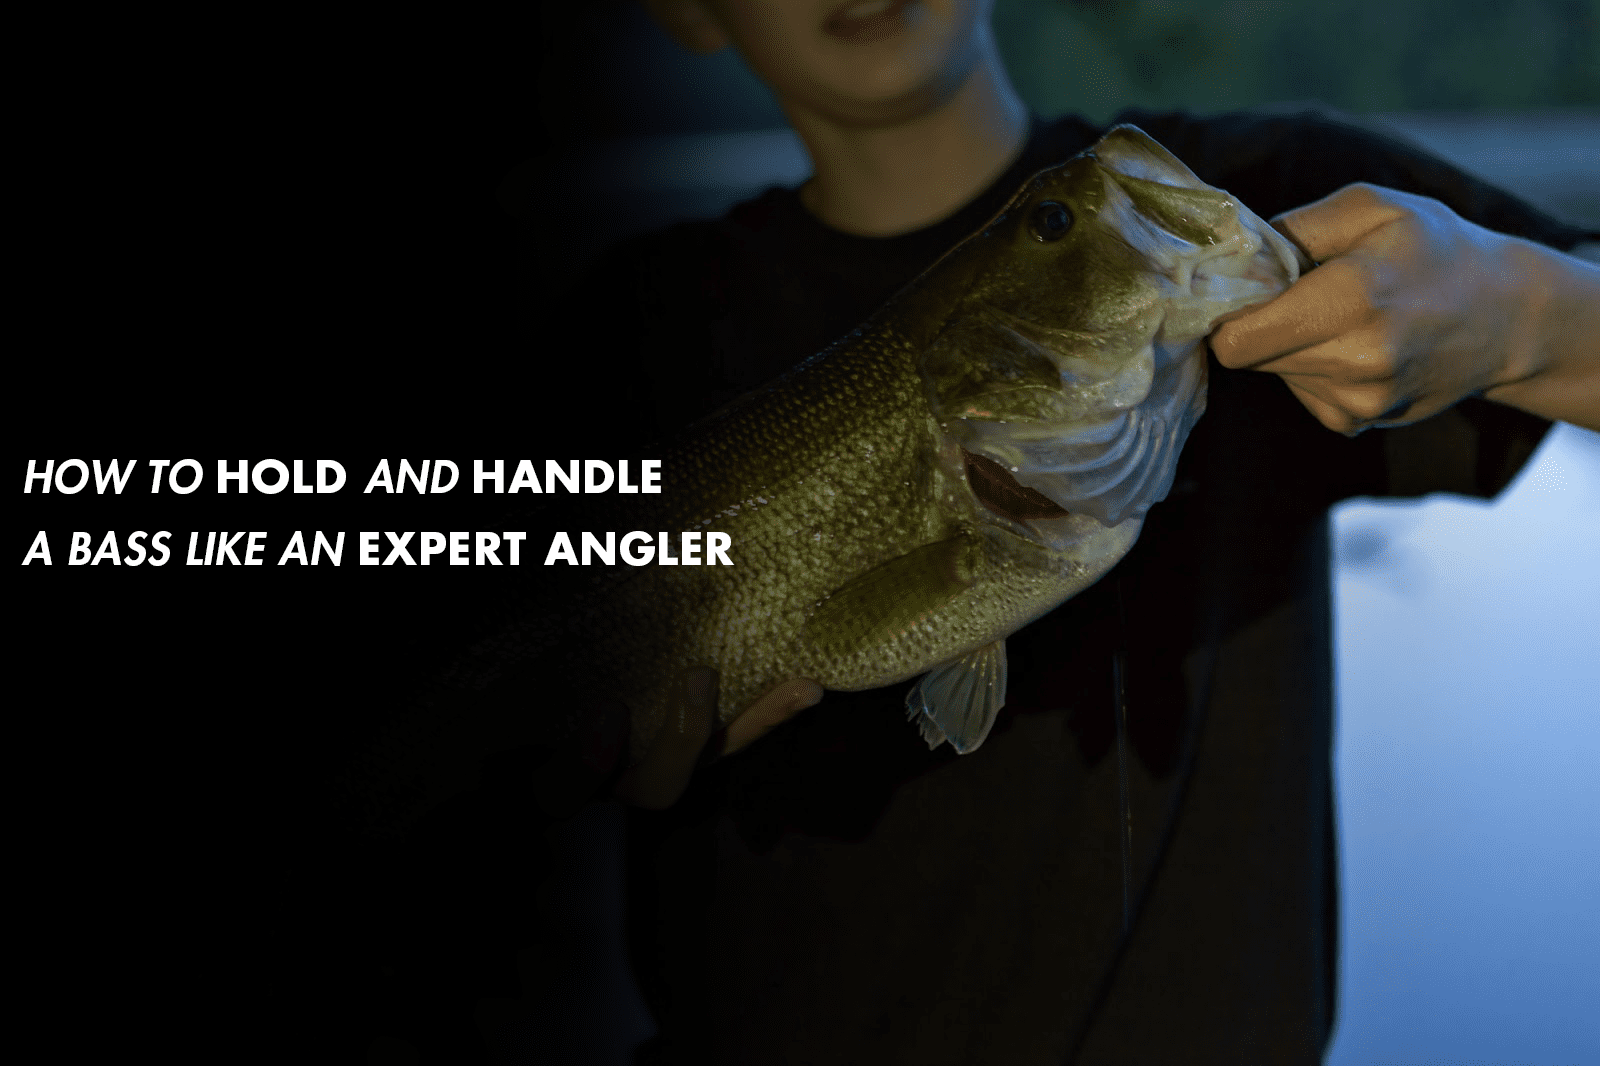 How To Hold and Handle a Bass Like an Expert Angler